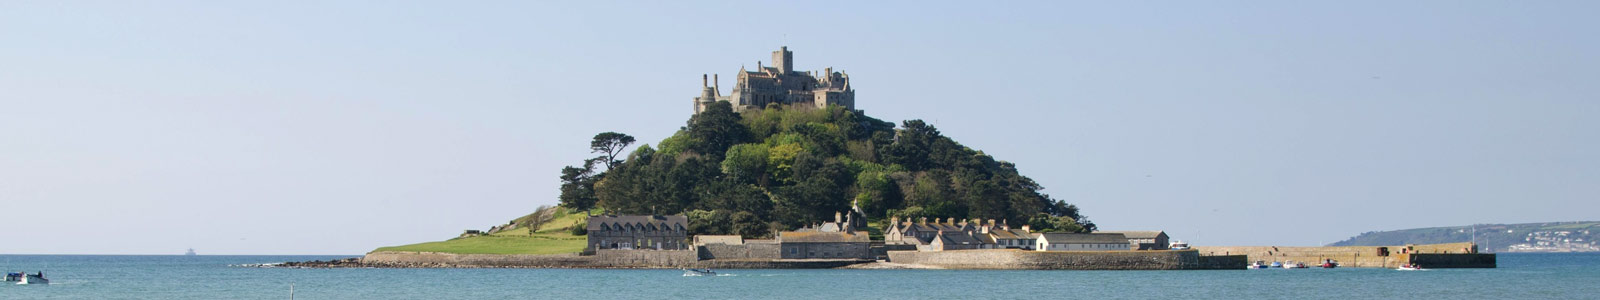 Things to do in Cornwall:  Visit St Michaels Mount